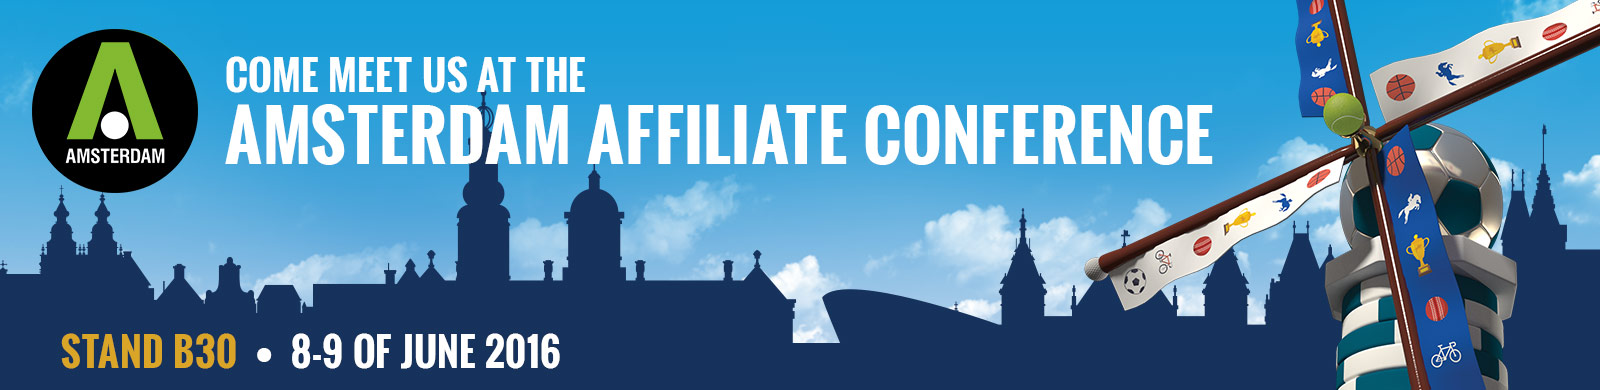 See you at the Amsterdam affiliate conference 8-9of June 2016